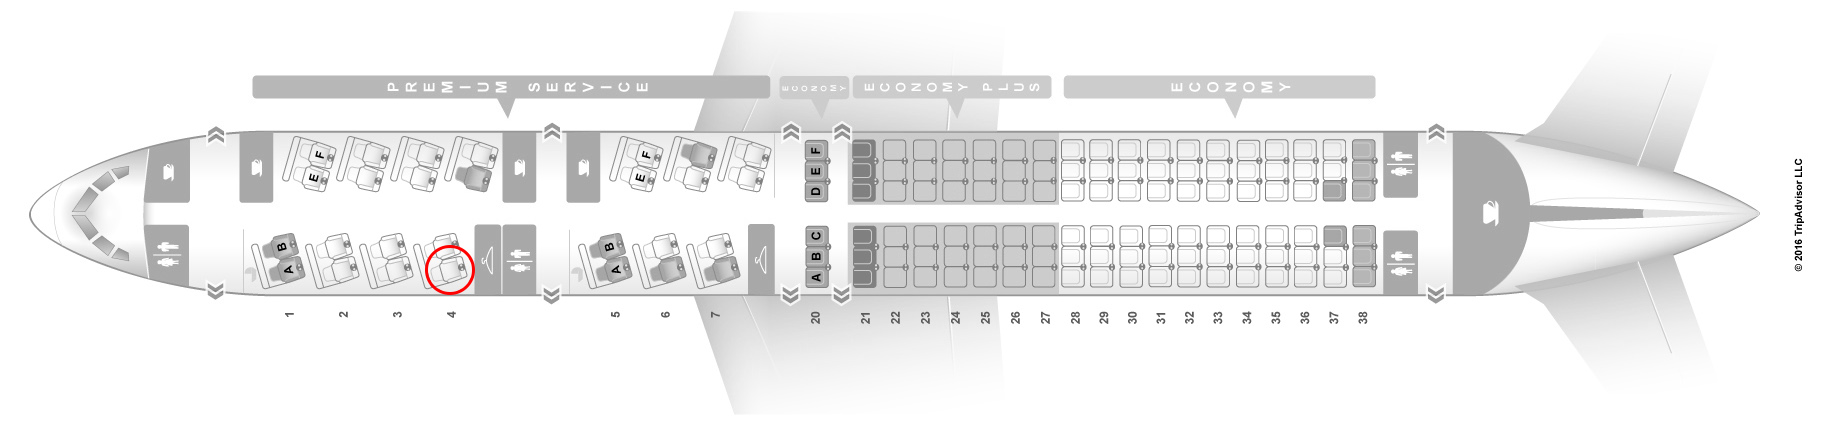 united airlines 757-200 seat map premium configuration